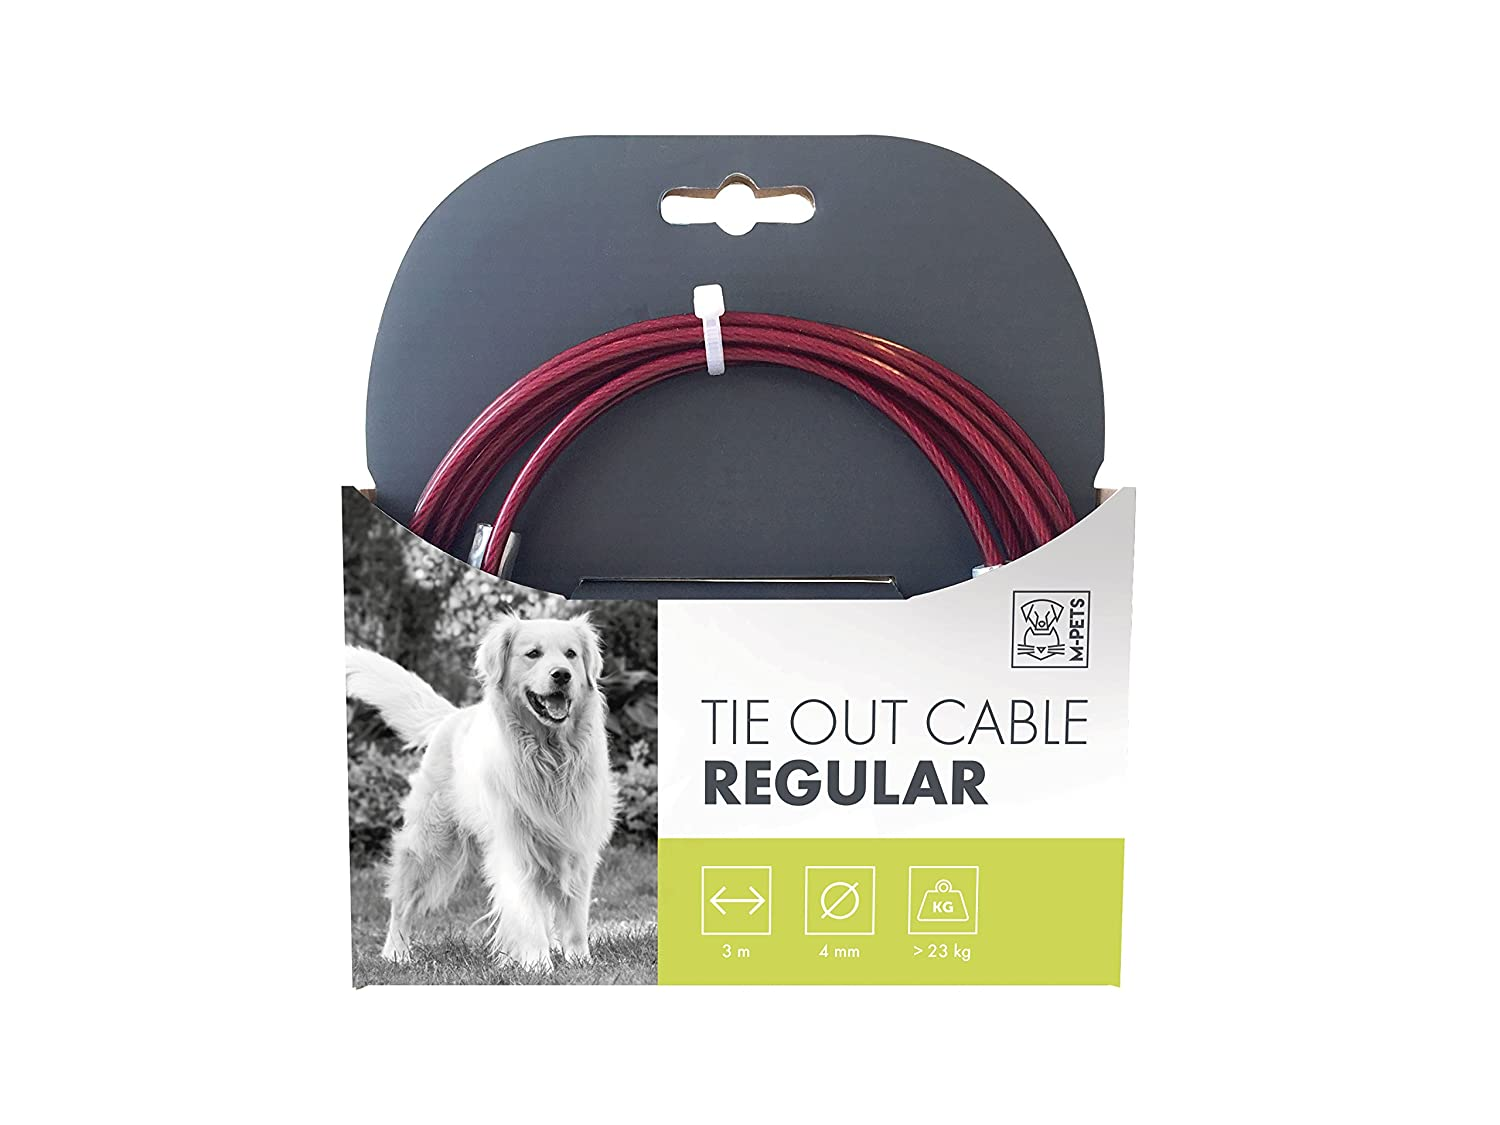 MPETS Câble d'Attache Regular pour Chien - Lot de 3 10800499